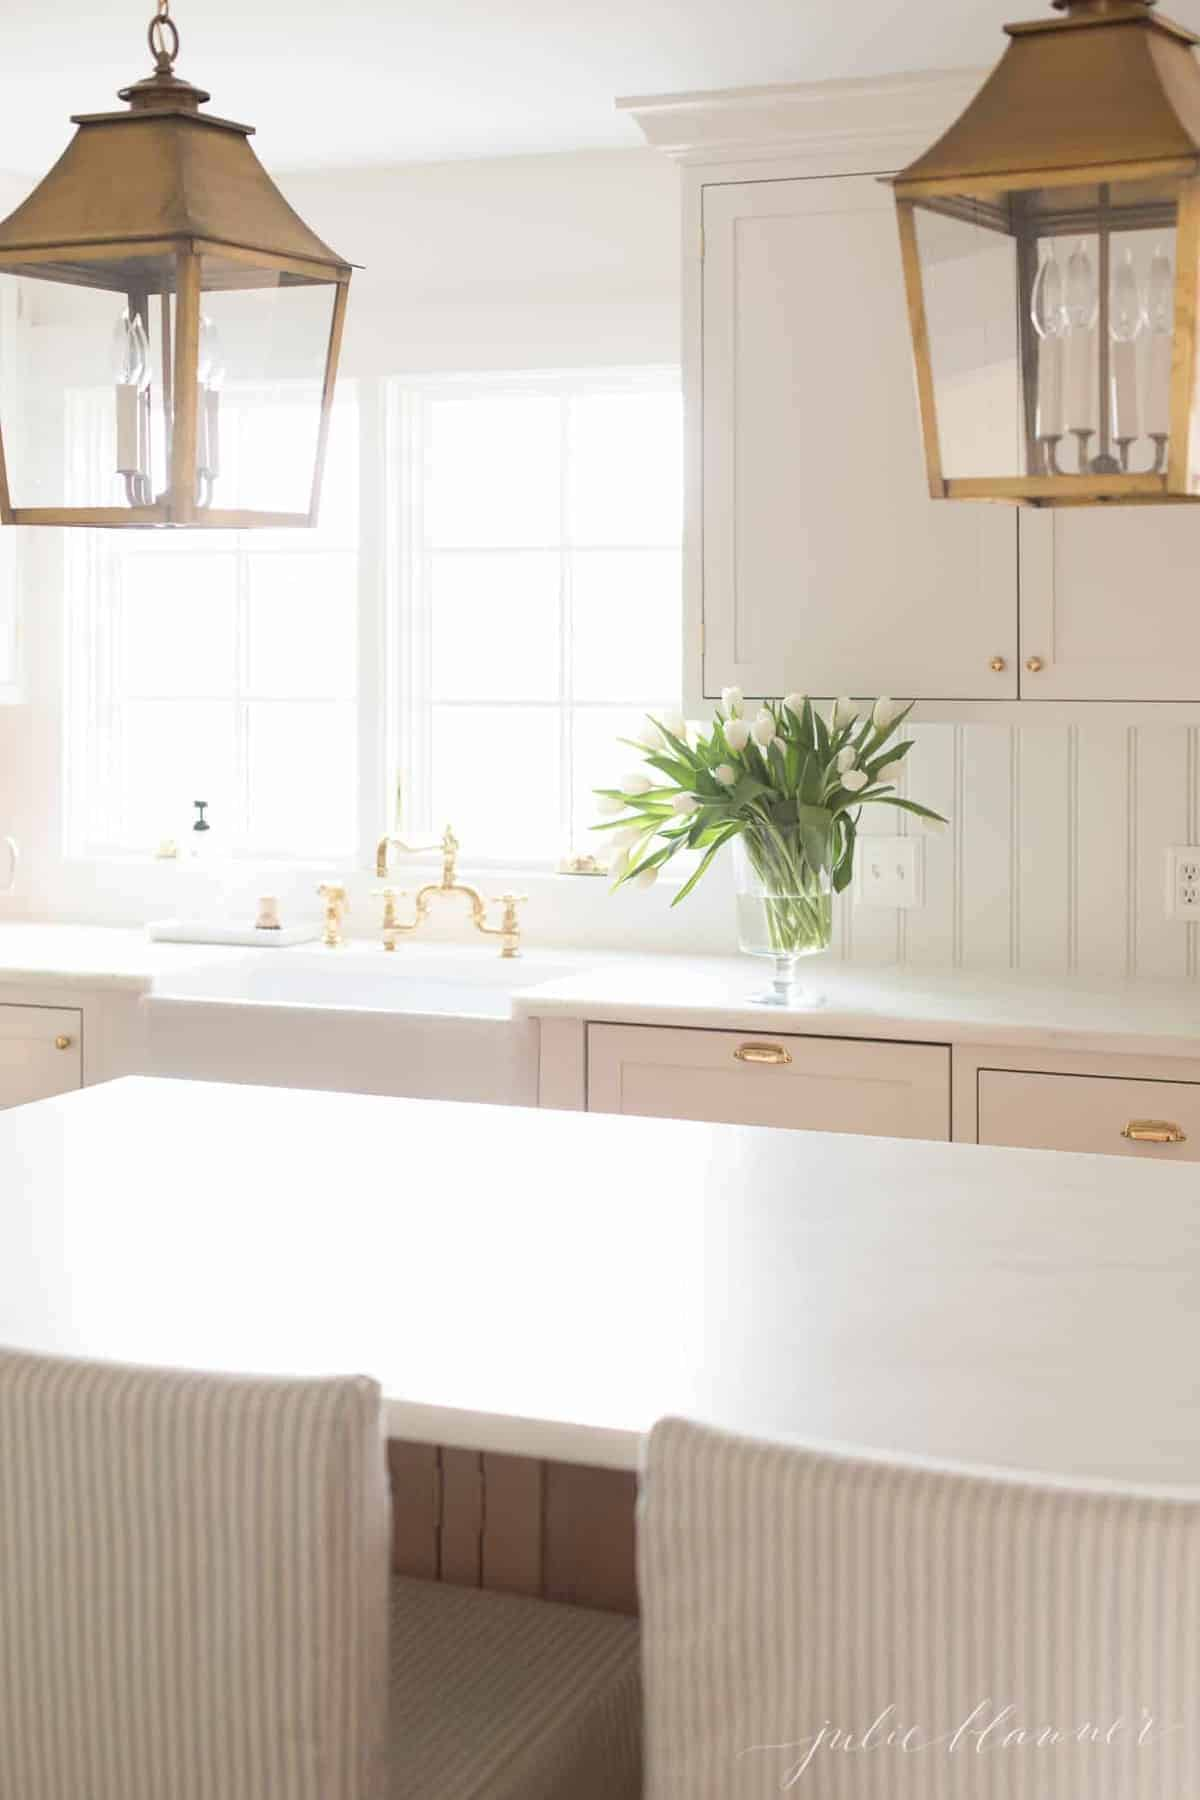 A white kitchen with shaker style cabinets, brass lanterns hanging over island.